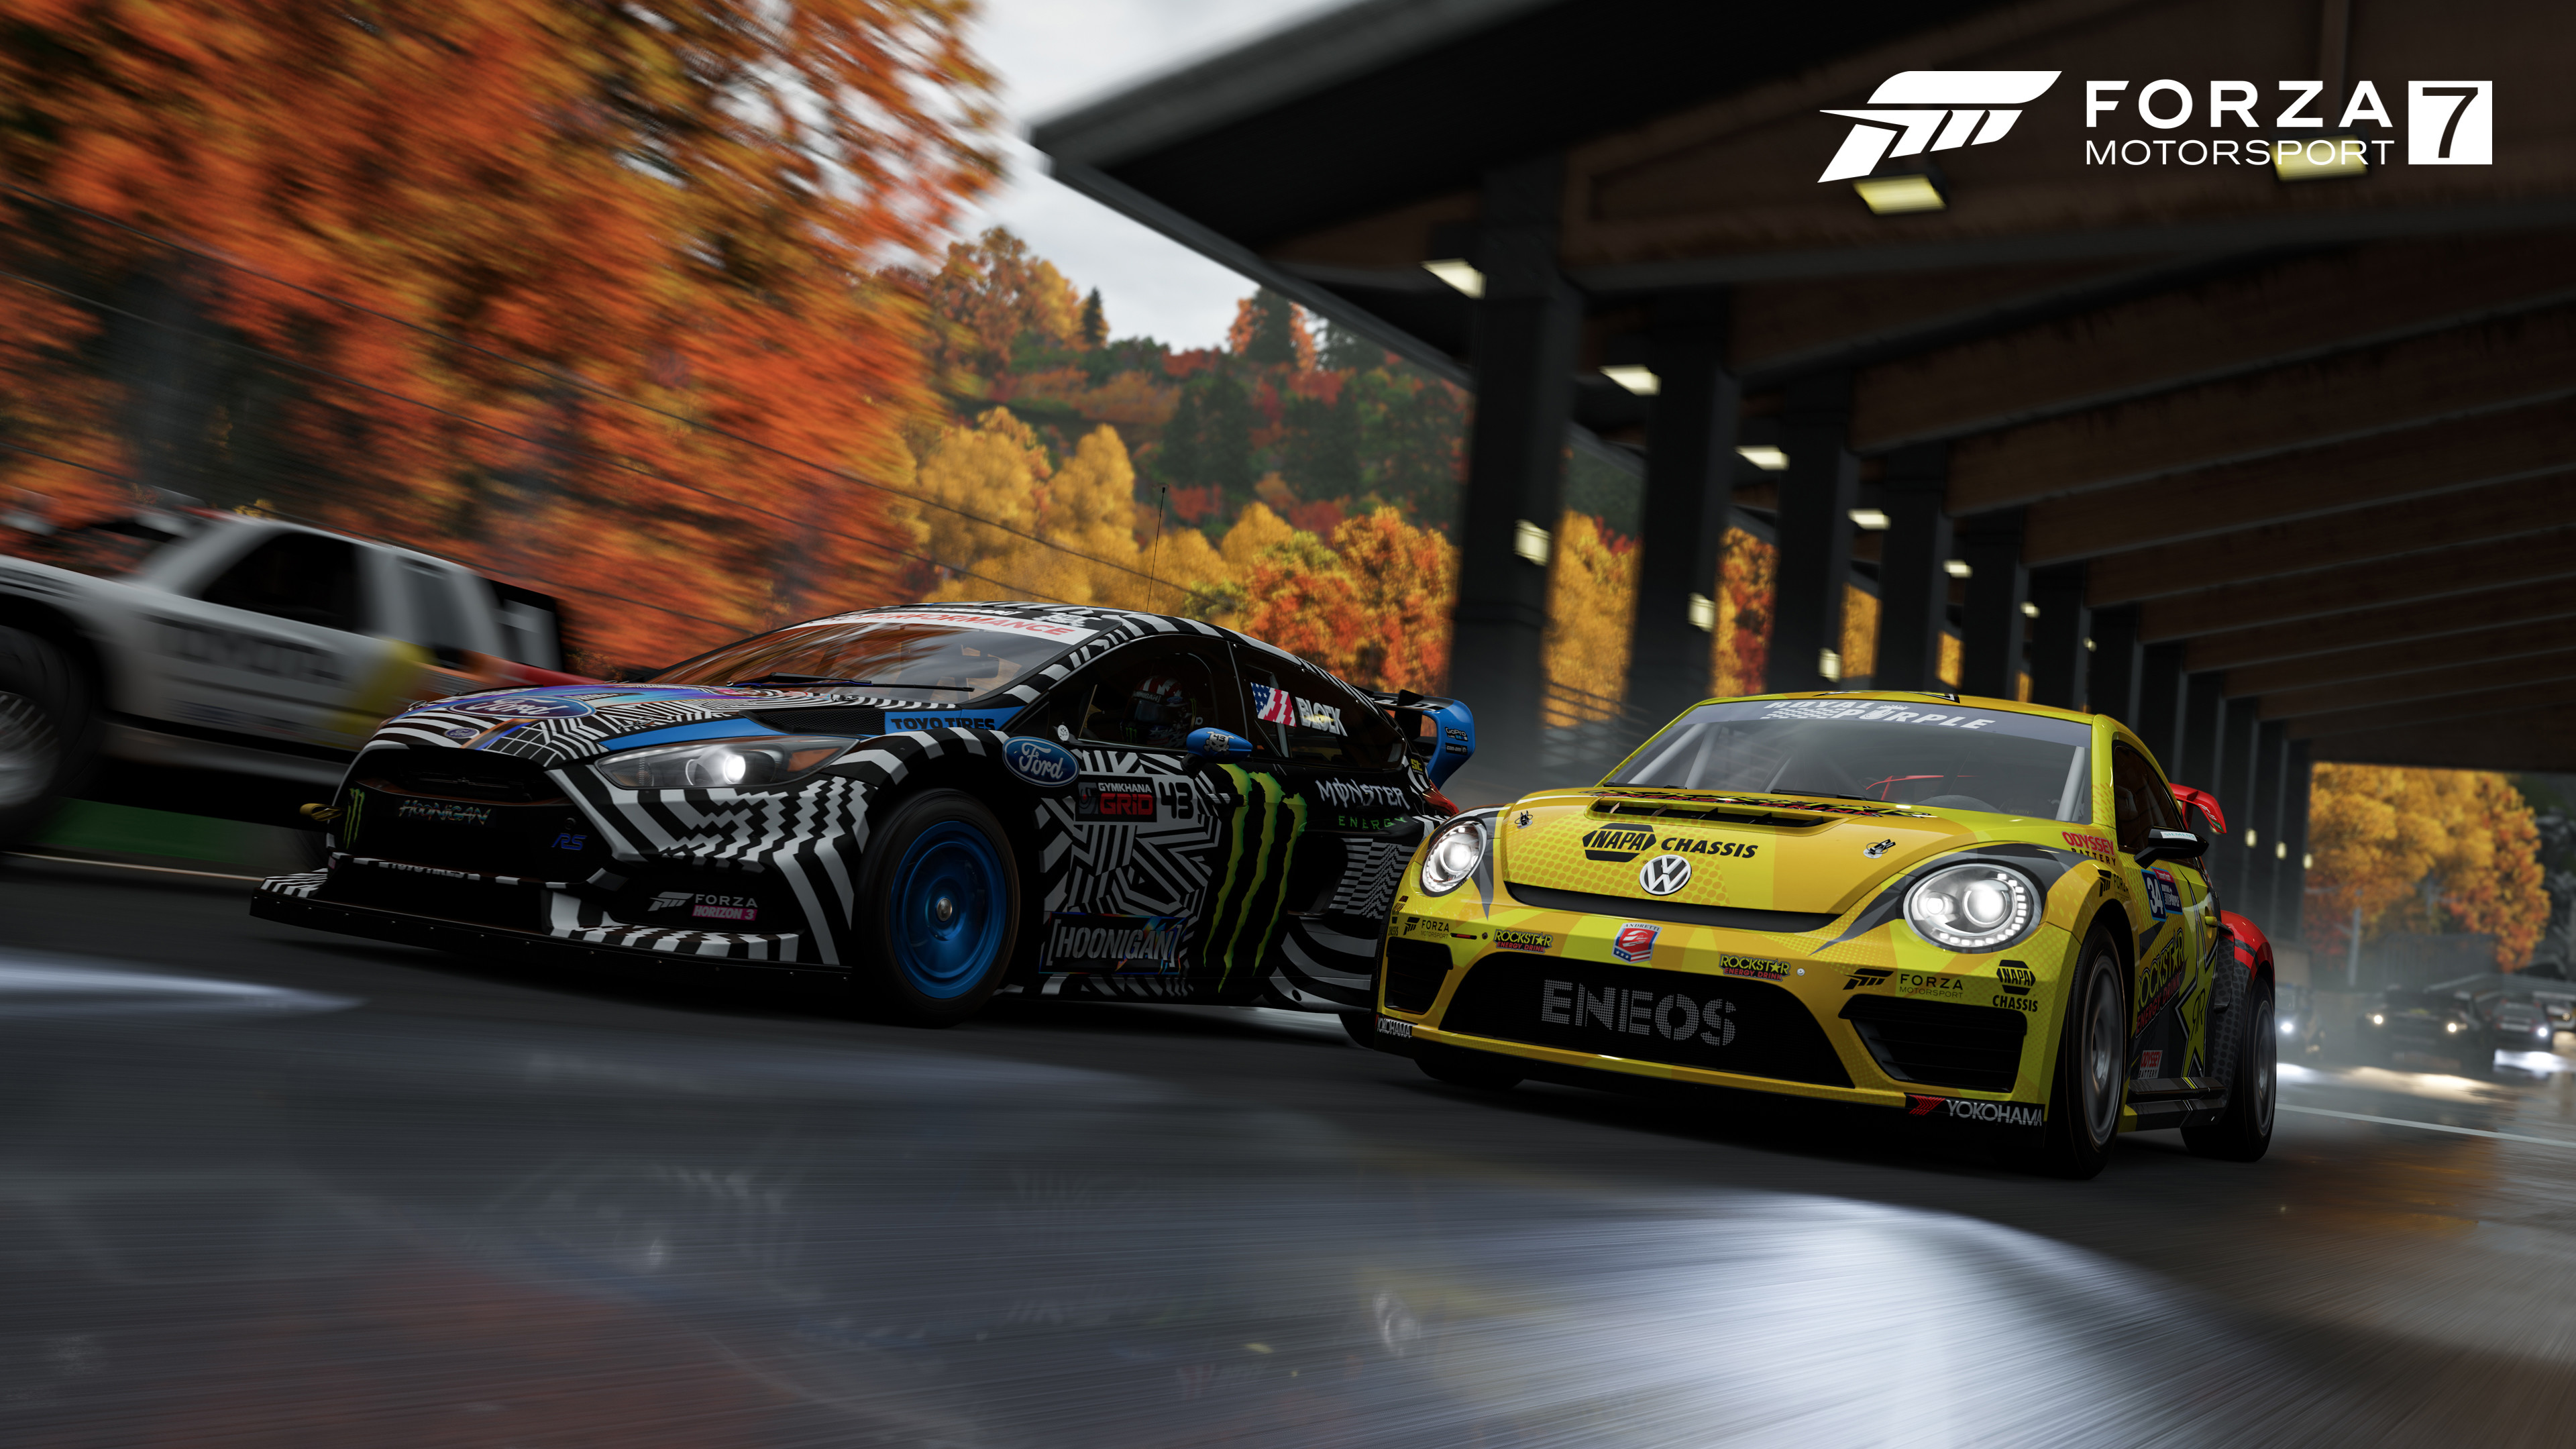 Forza Motorsport 7 review: One racing game to rule them all